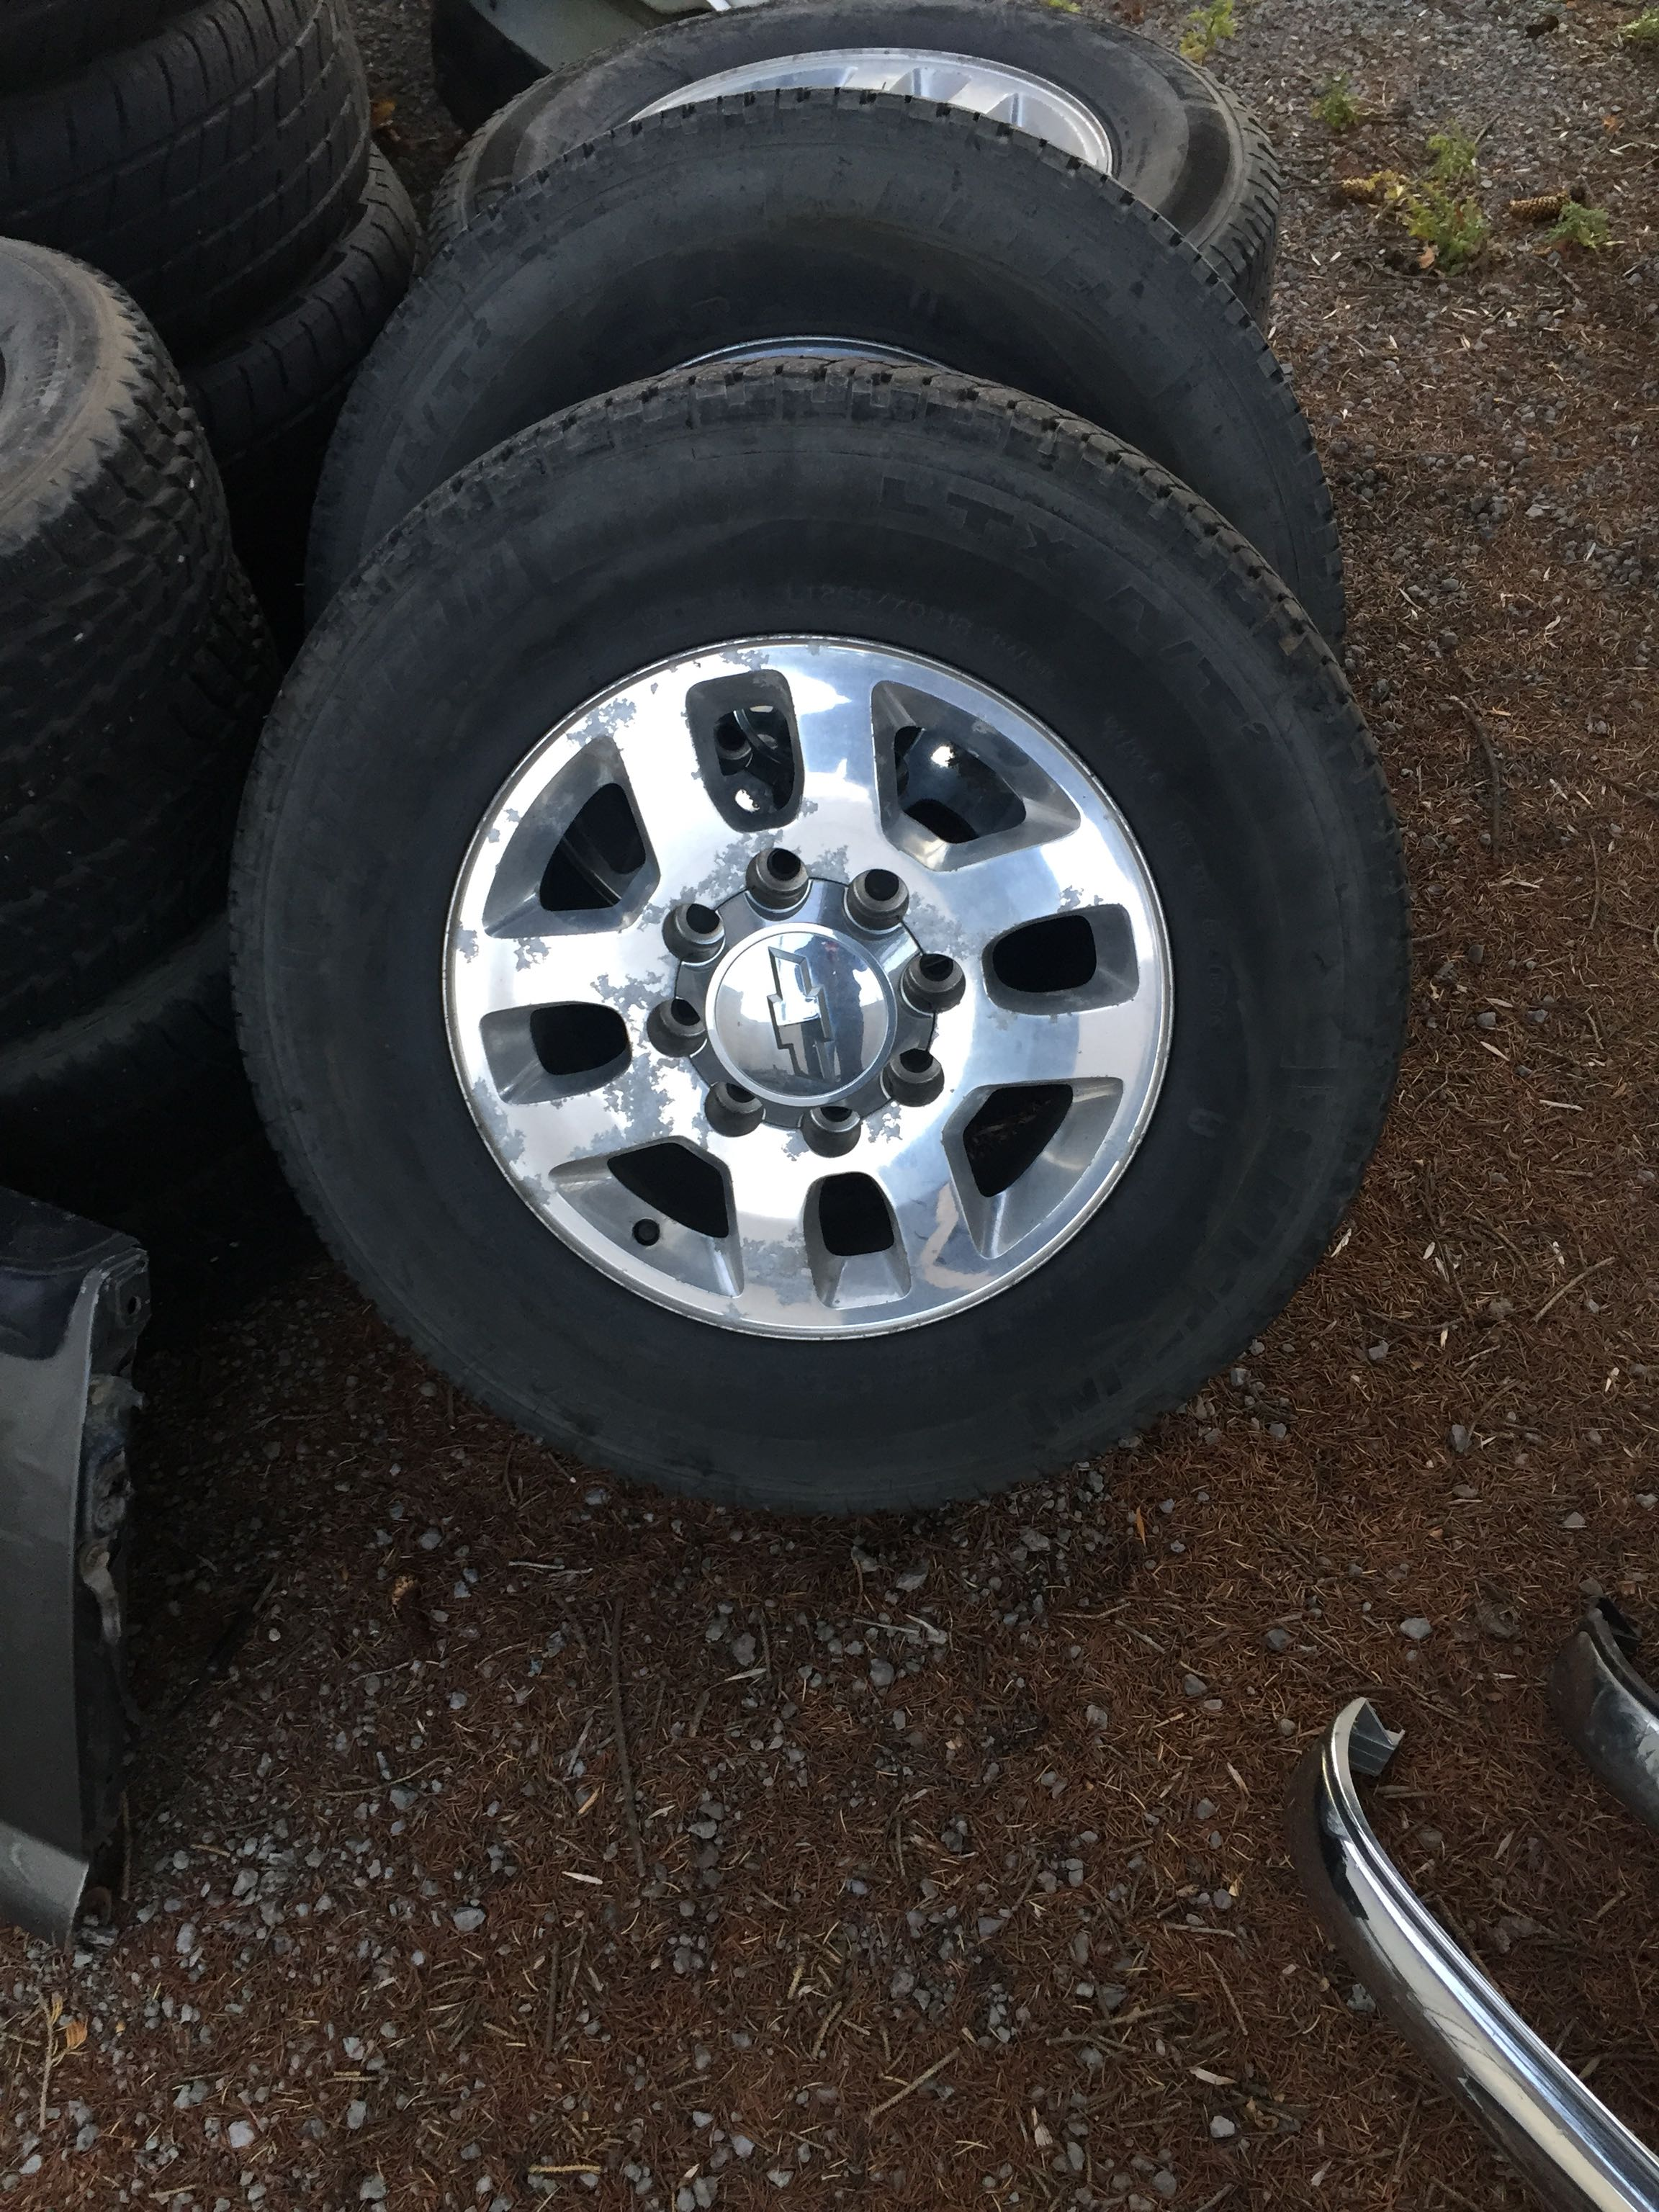 2012 Chevy 2500 wheels and tires